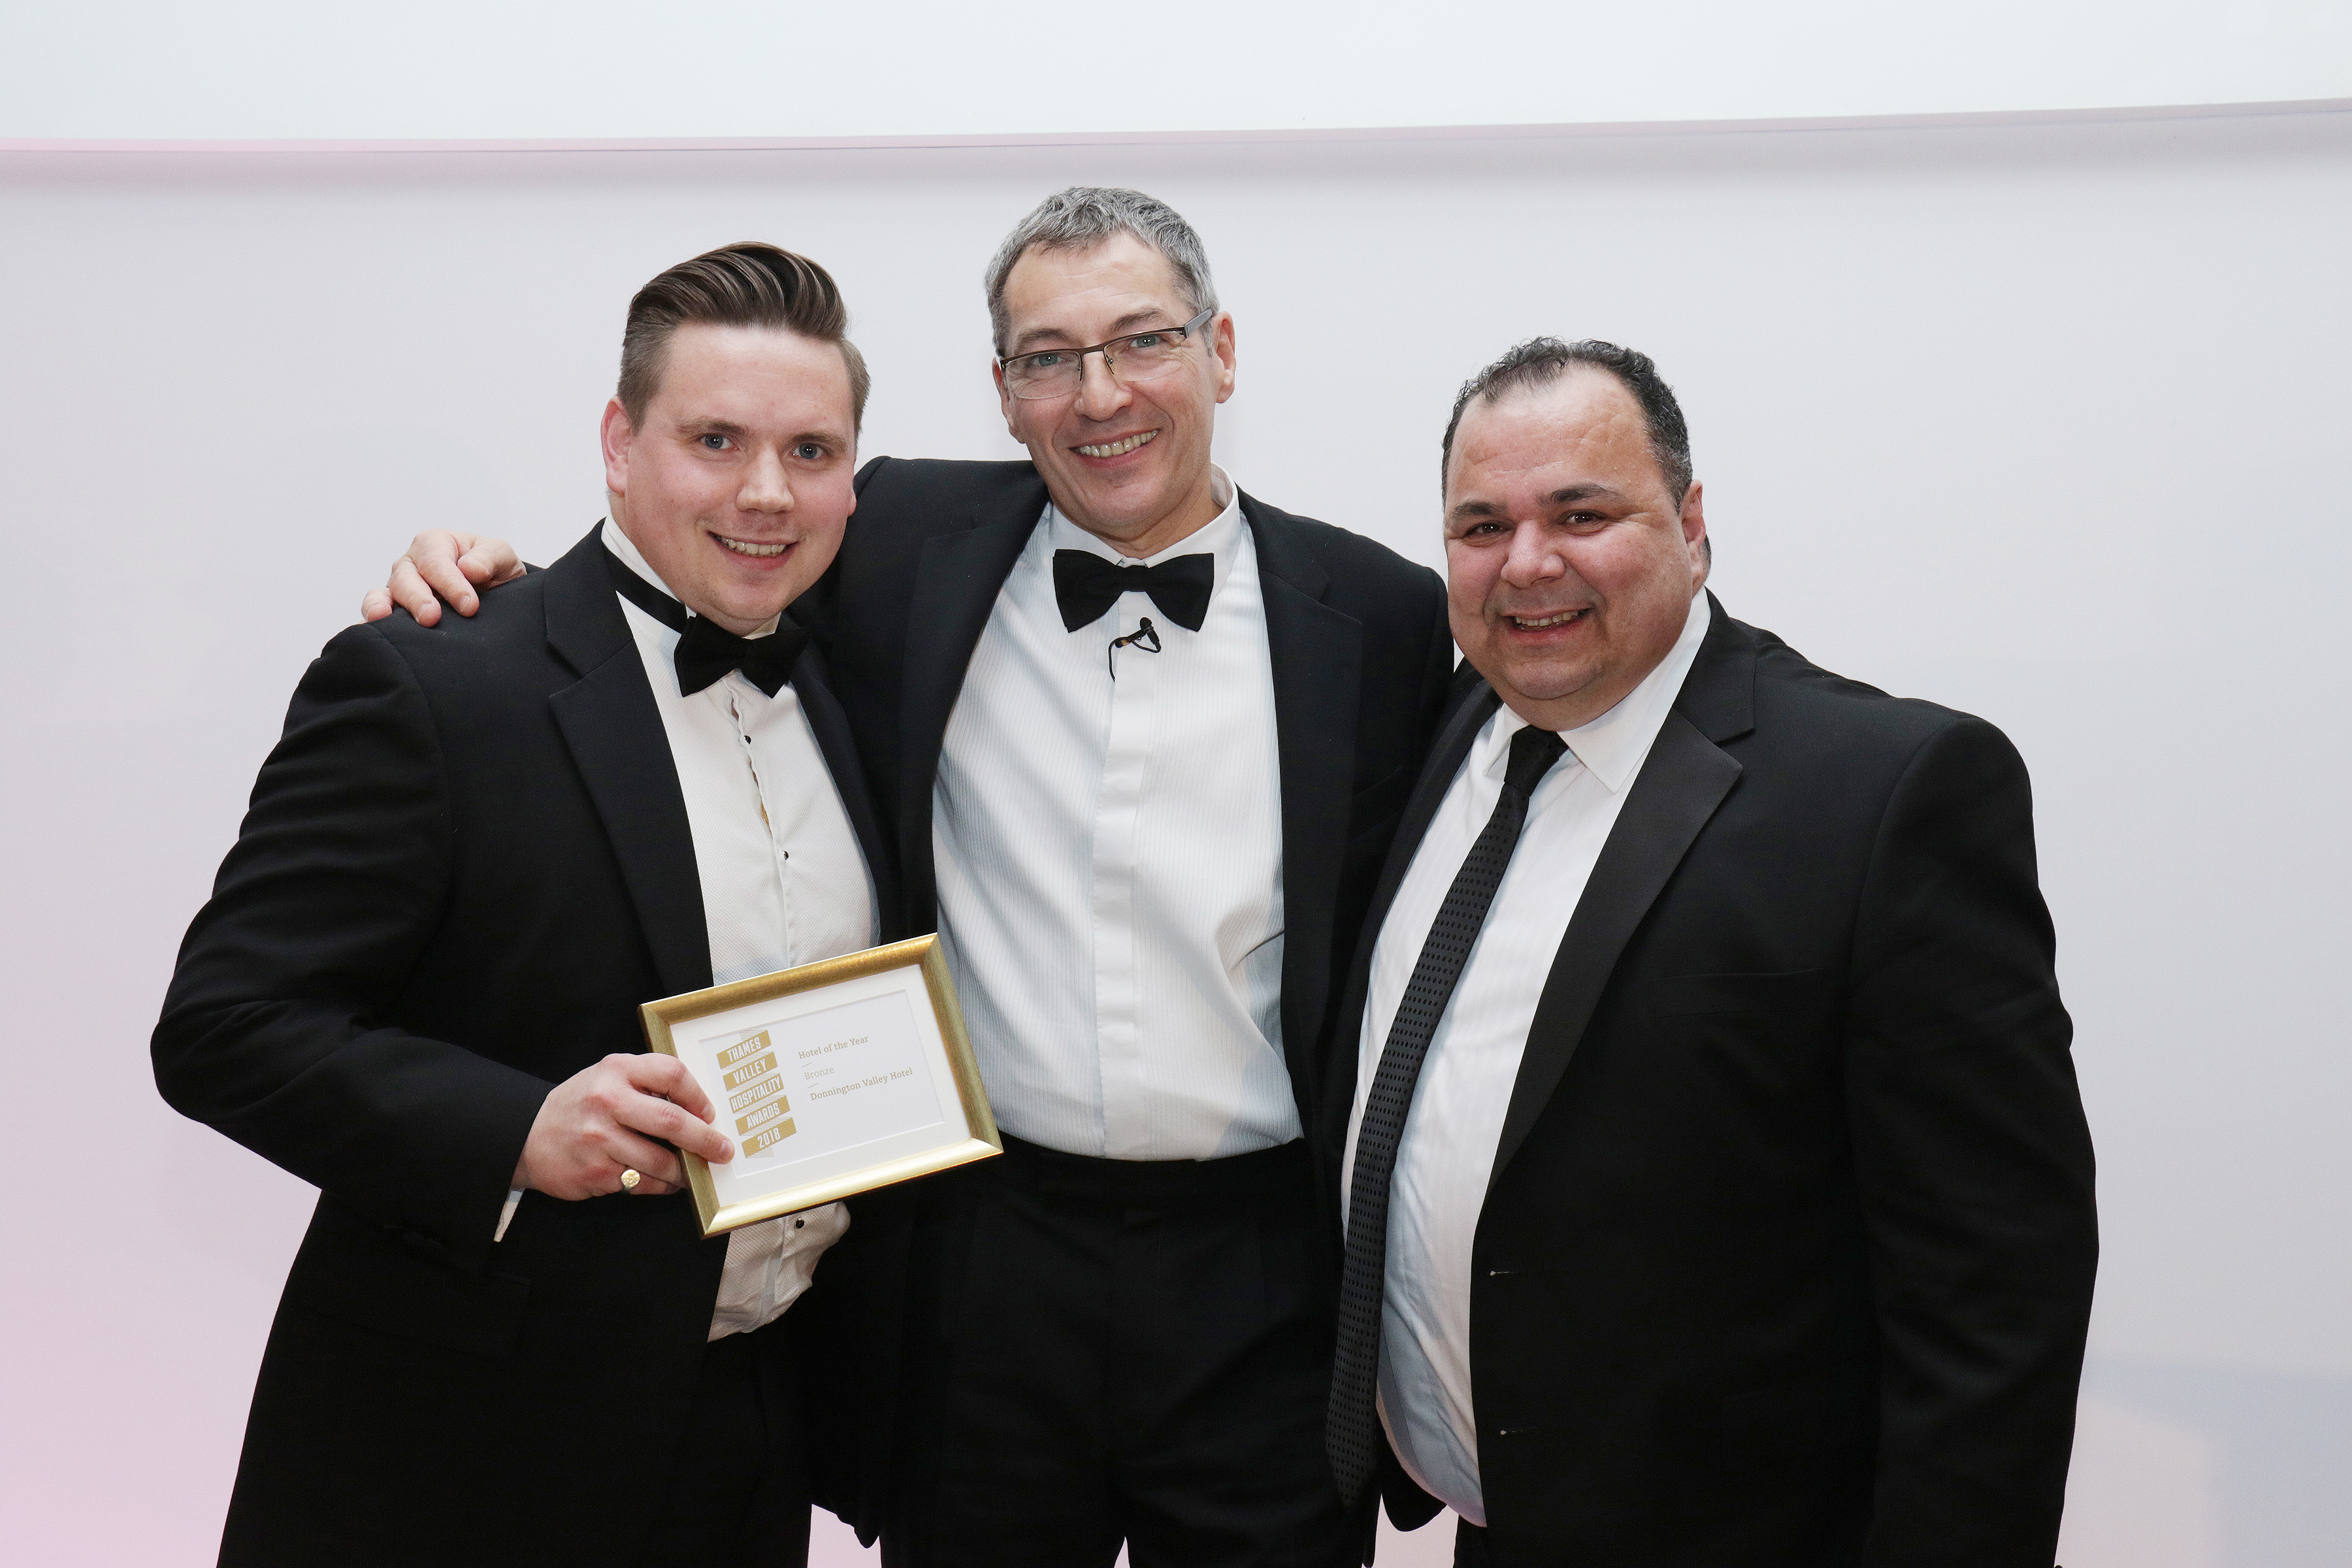 Donnington Valley win bronze in Hotel of Year